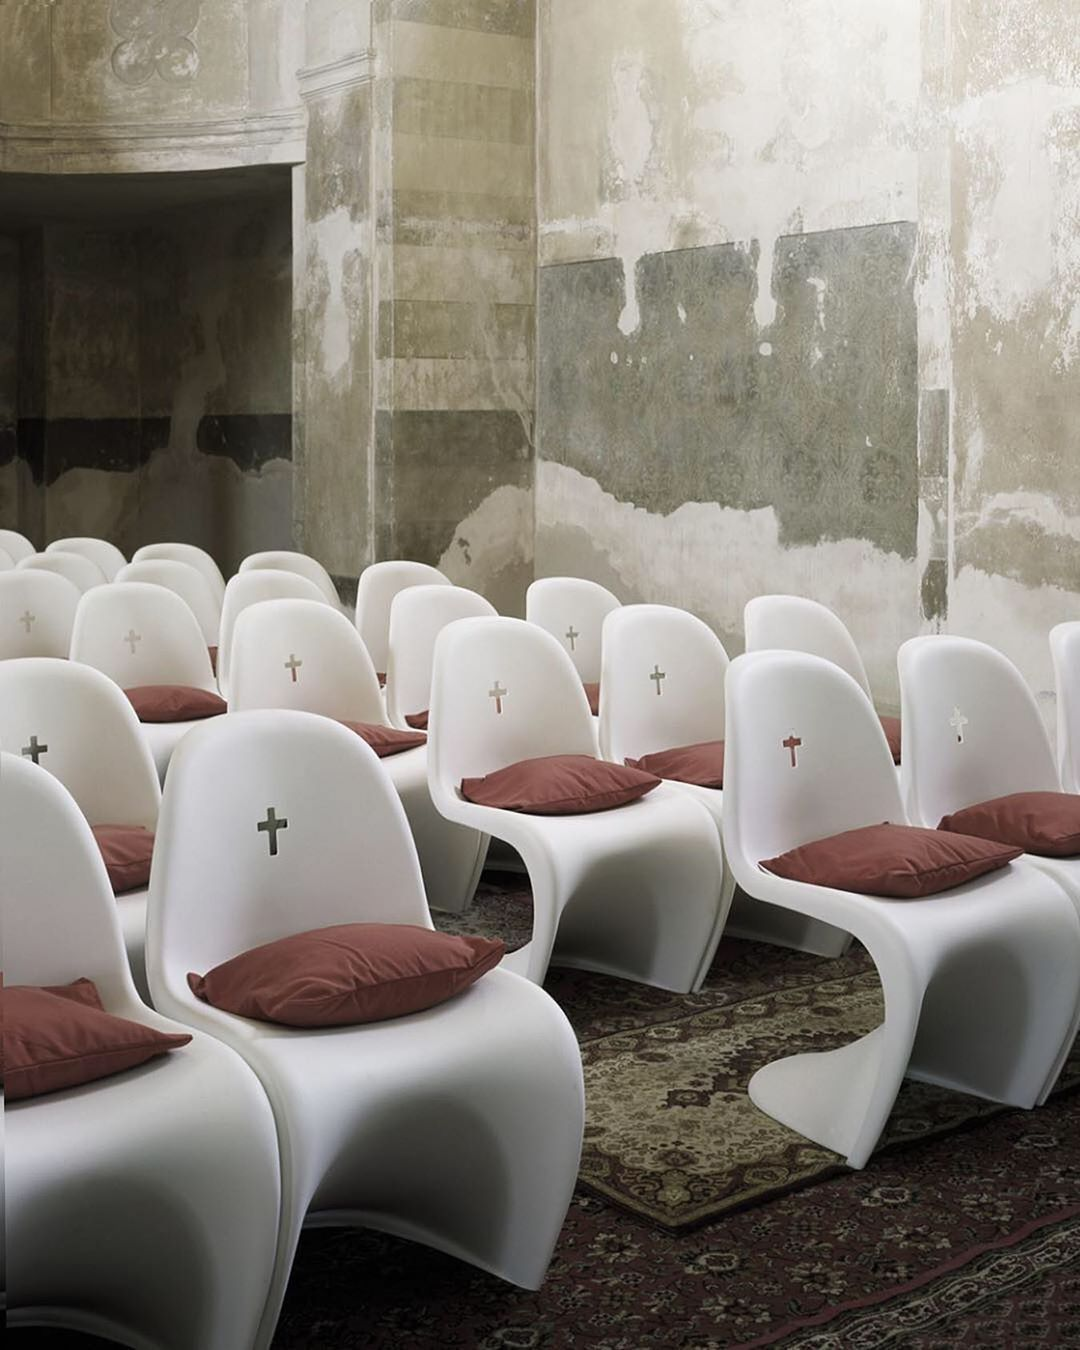 Obsolete Inc On Instagram Rows Rows Of Custom Verner Panton Chairs For A Redesign Of St Bartholomew S Churc Panton Chair Church Design Verner Panton Chair